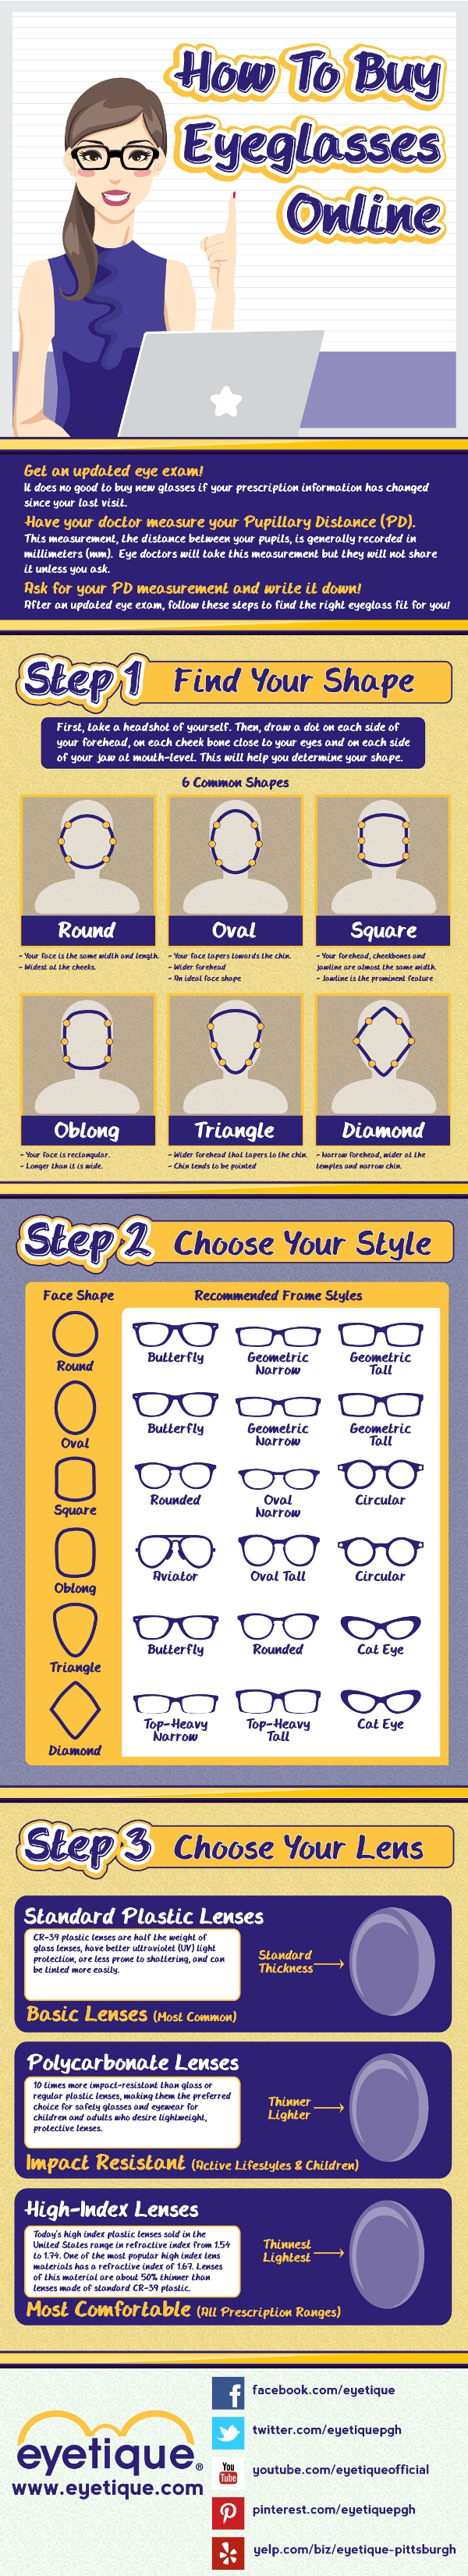 how-to-buy-eyeglasses-online_525d6d3f7782a